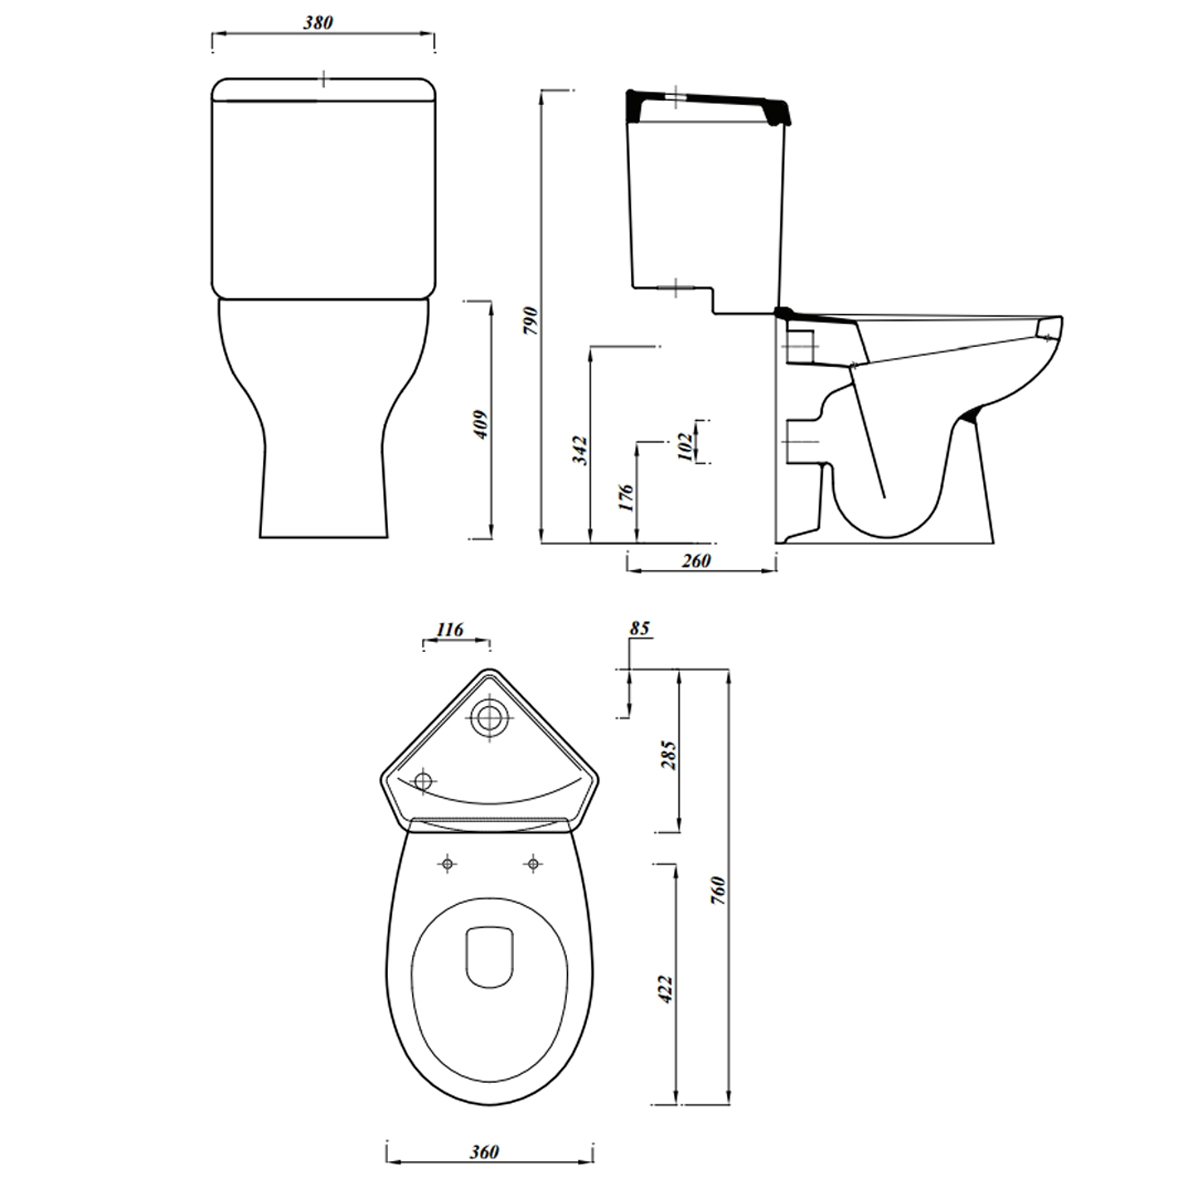 Toilet Detail Drawing At Getdrawings Com Free For